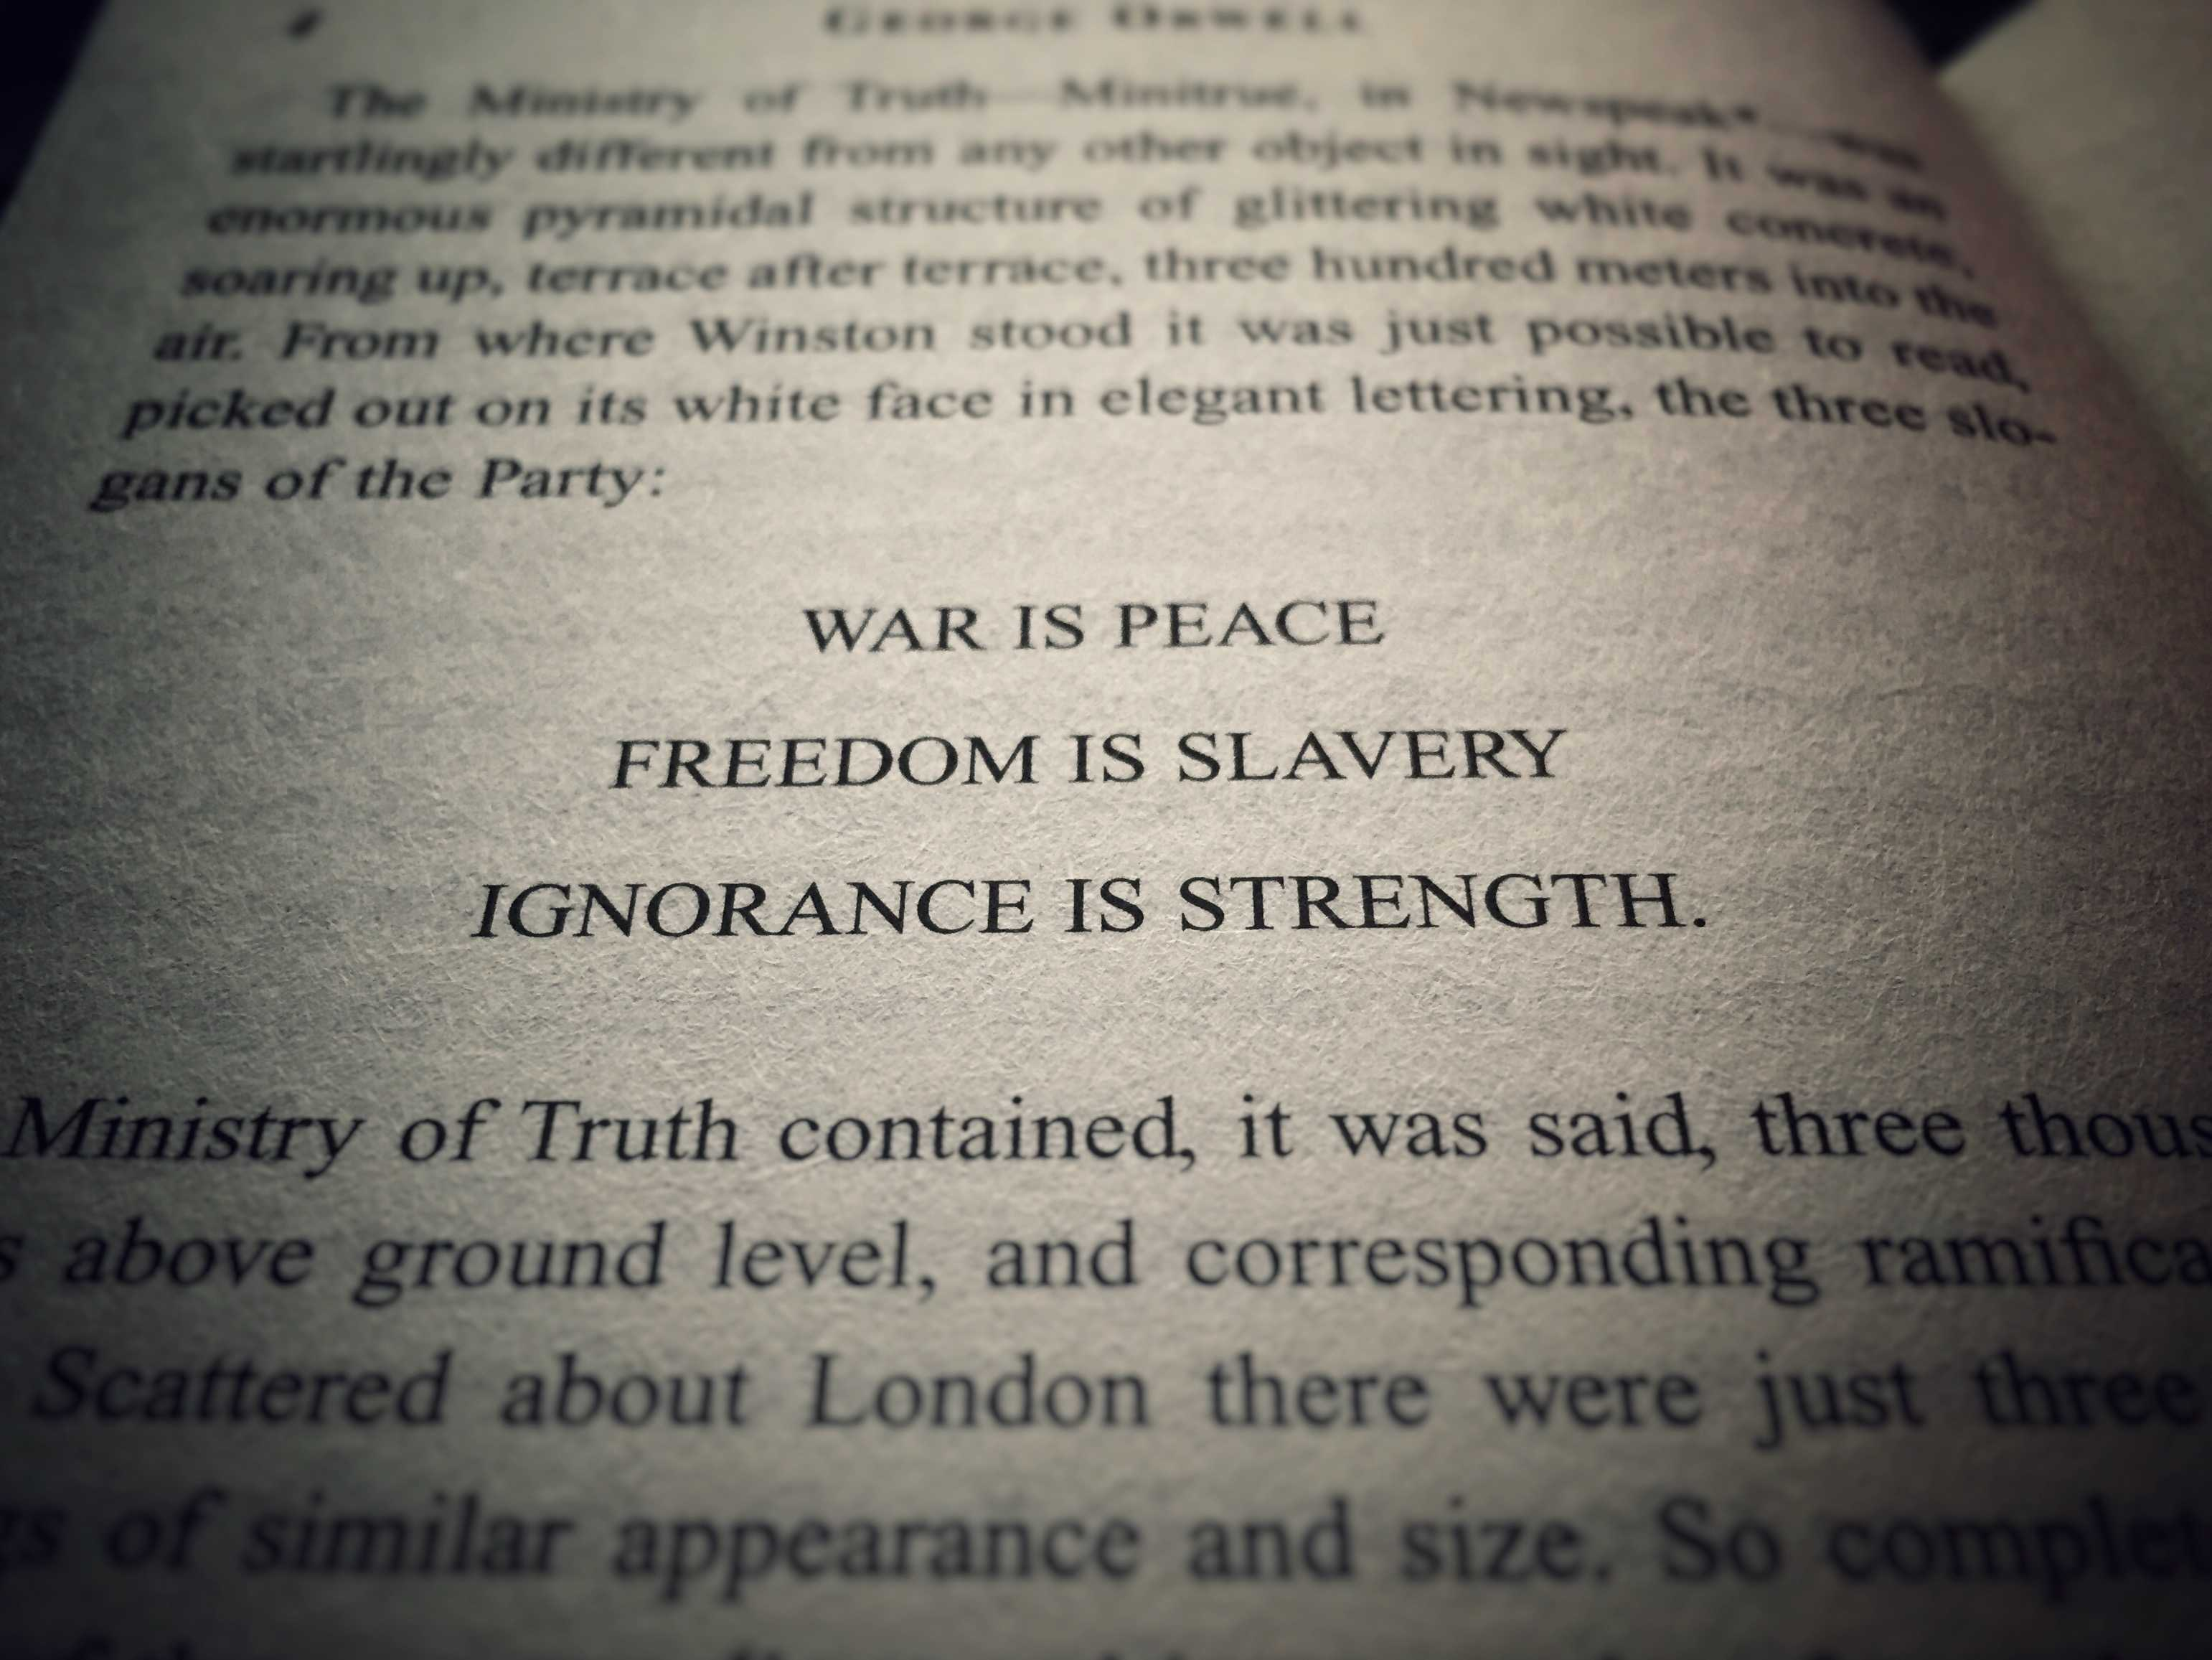 In George Orwell's